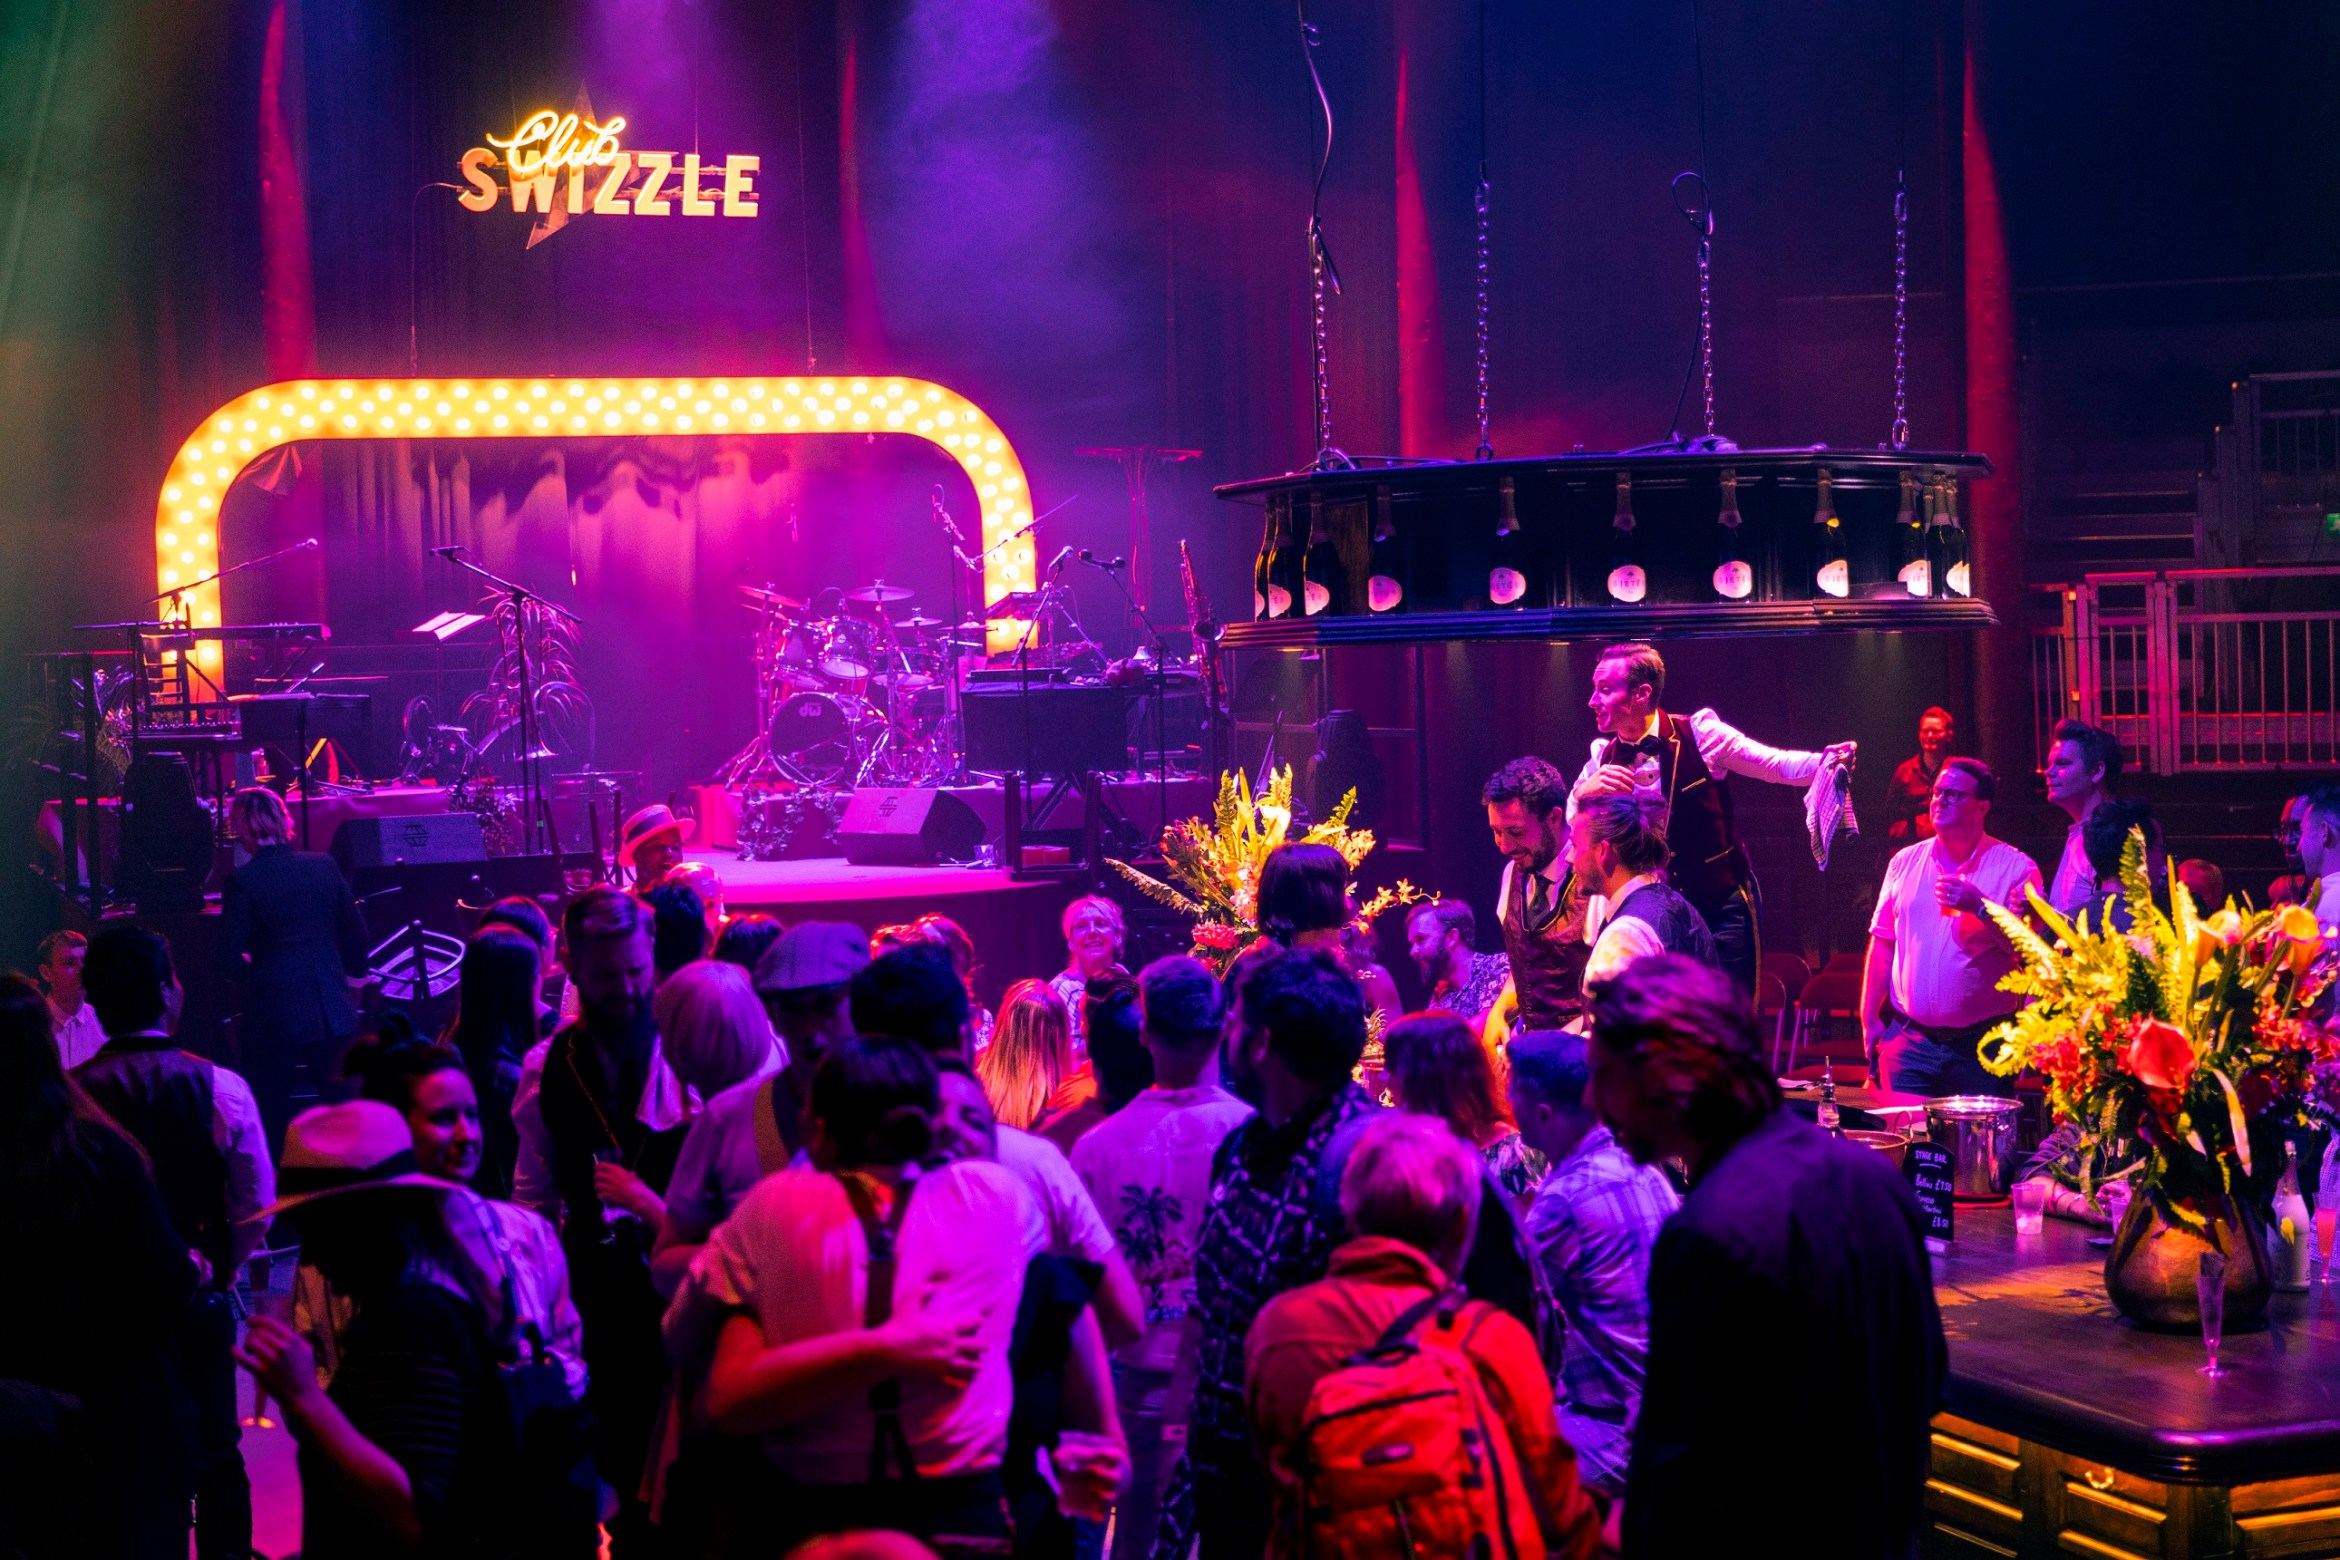 Club Swizzle at Roundhouse. Camden, London. Photograph by David Levene. 1/8/18